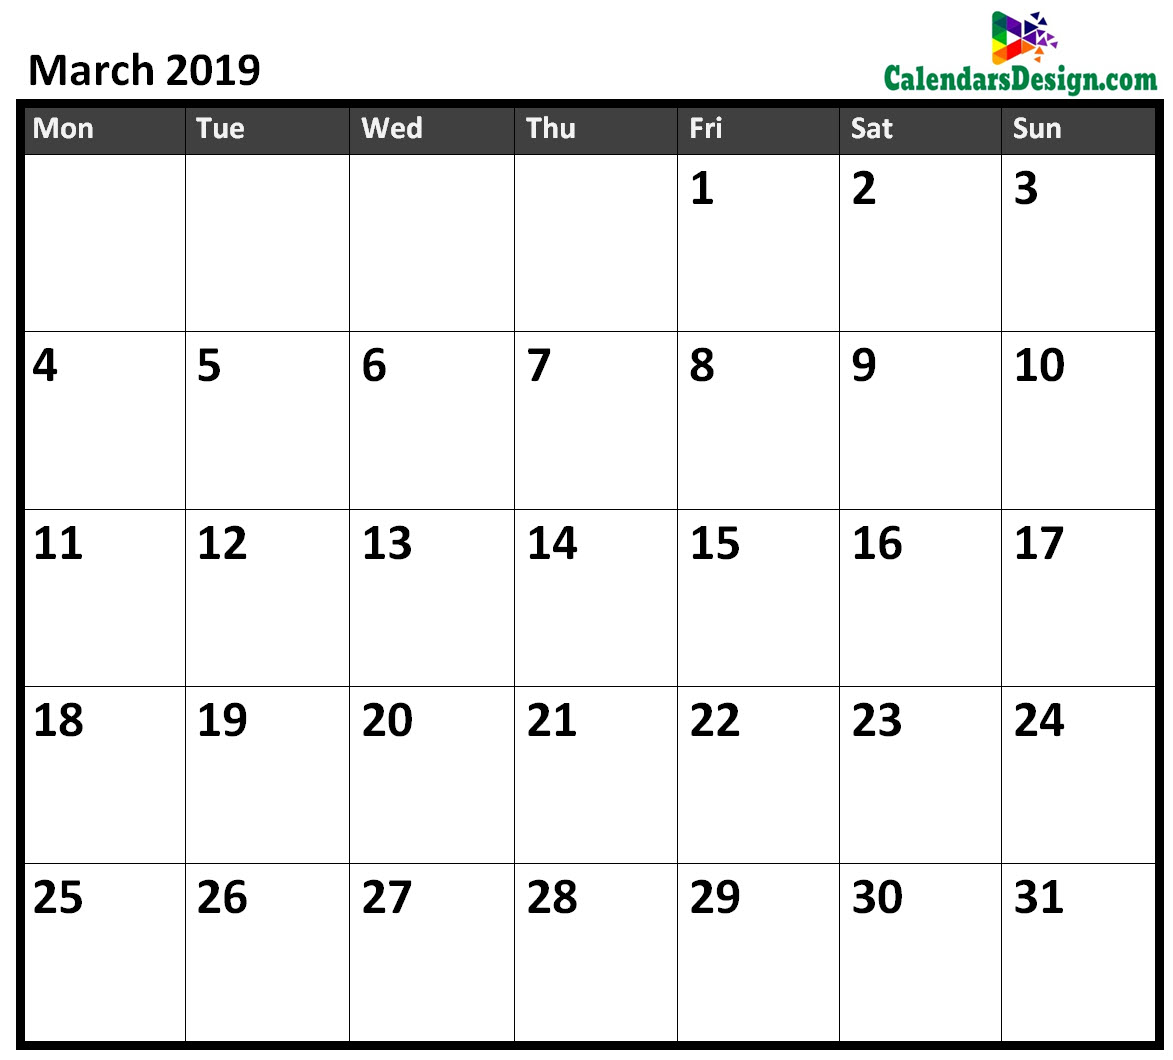 March 2019 Calendar Excel Free 2019 Printable Calendar